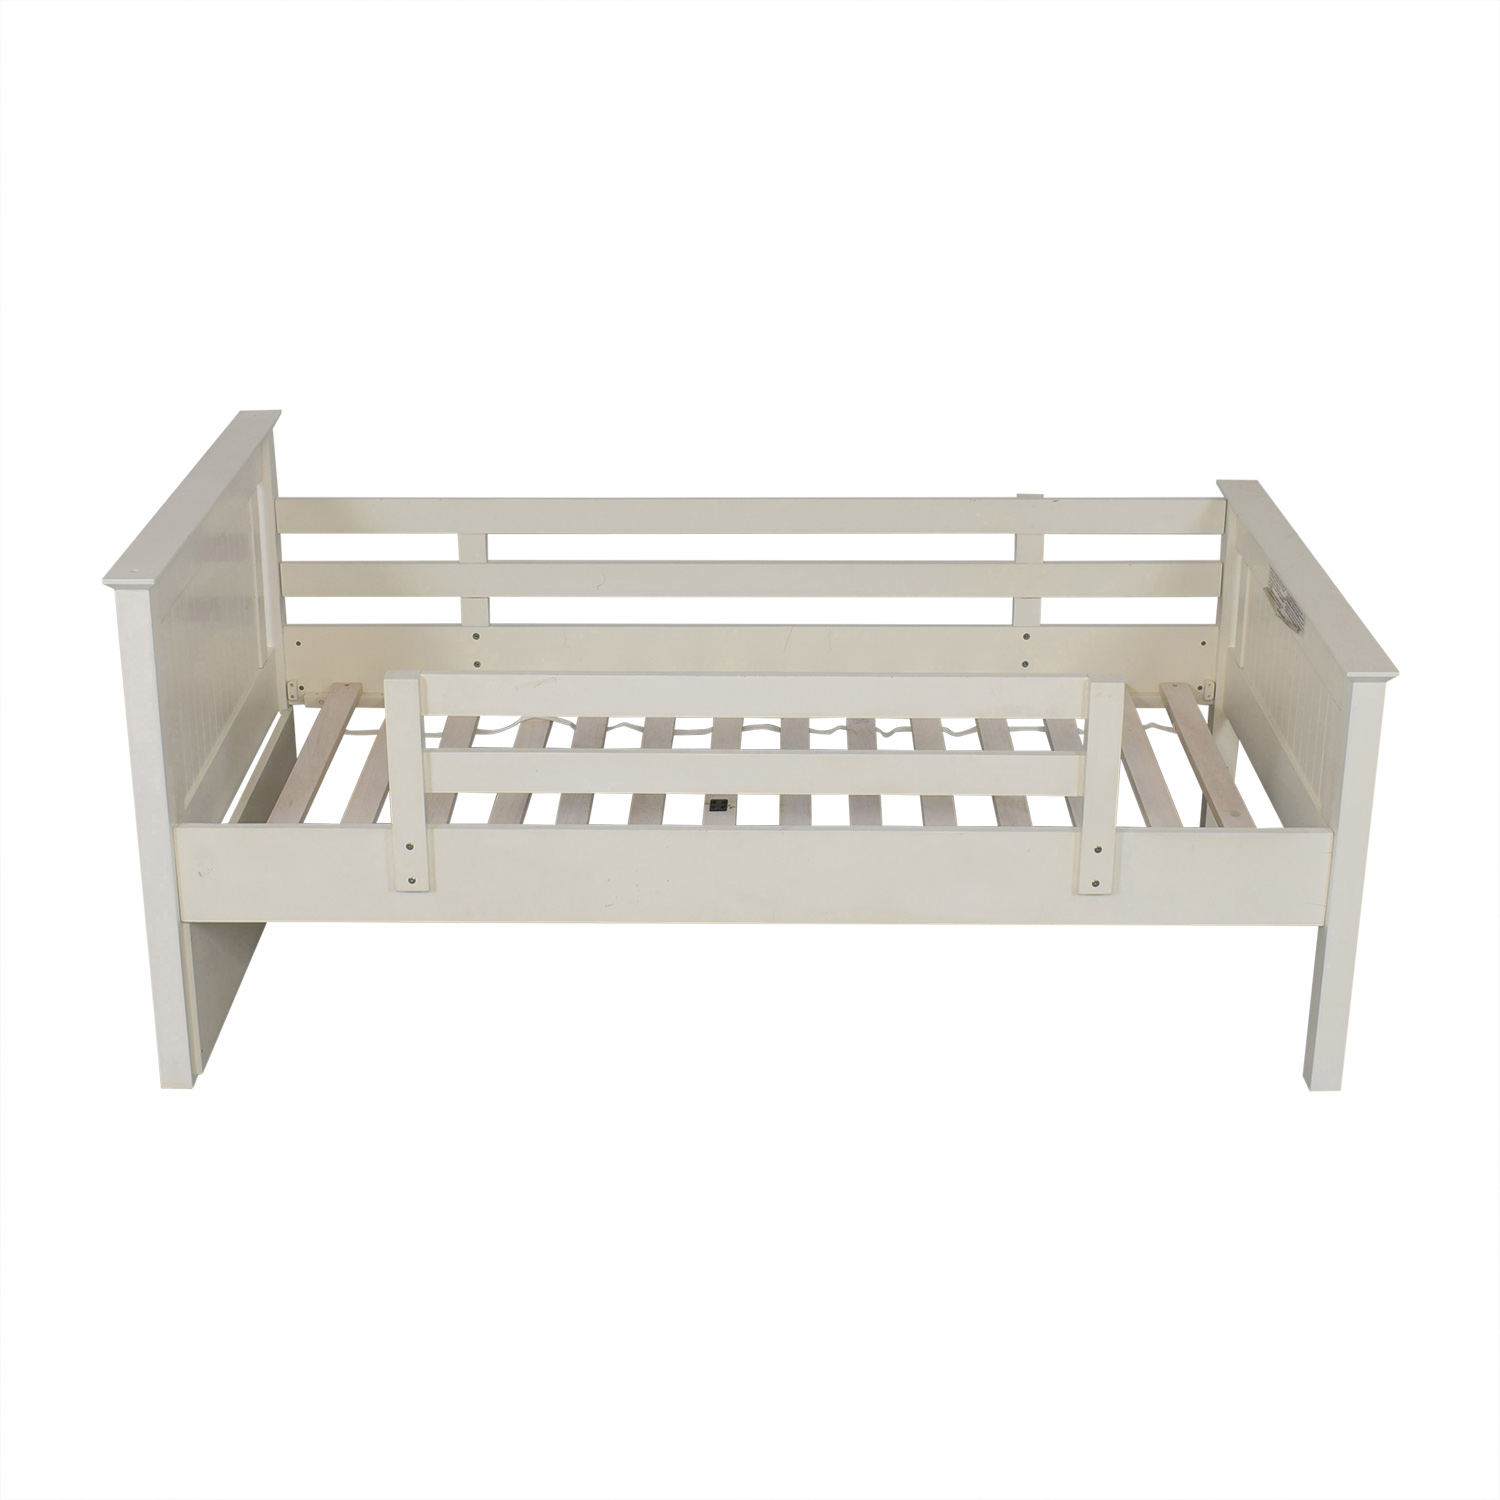 Epoch Design Epoch Design Twin Bed with Protective Rail price